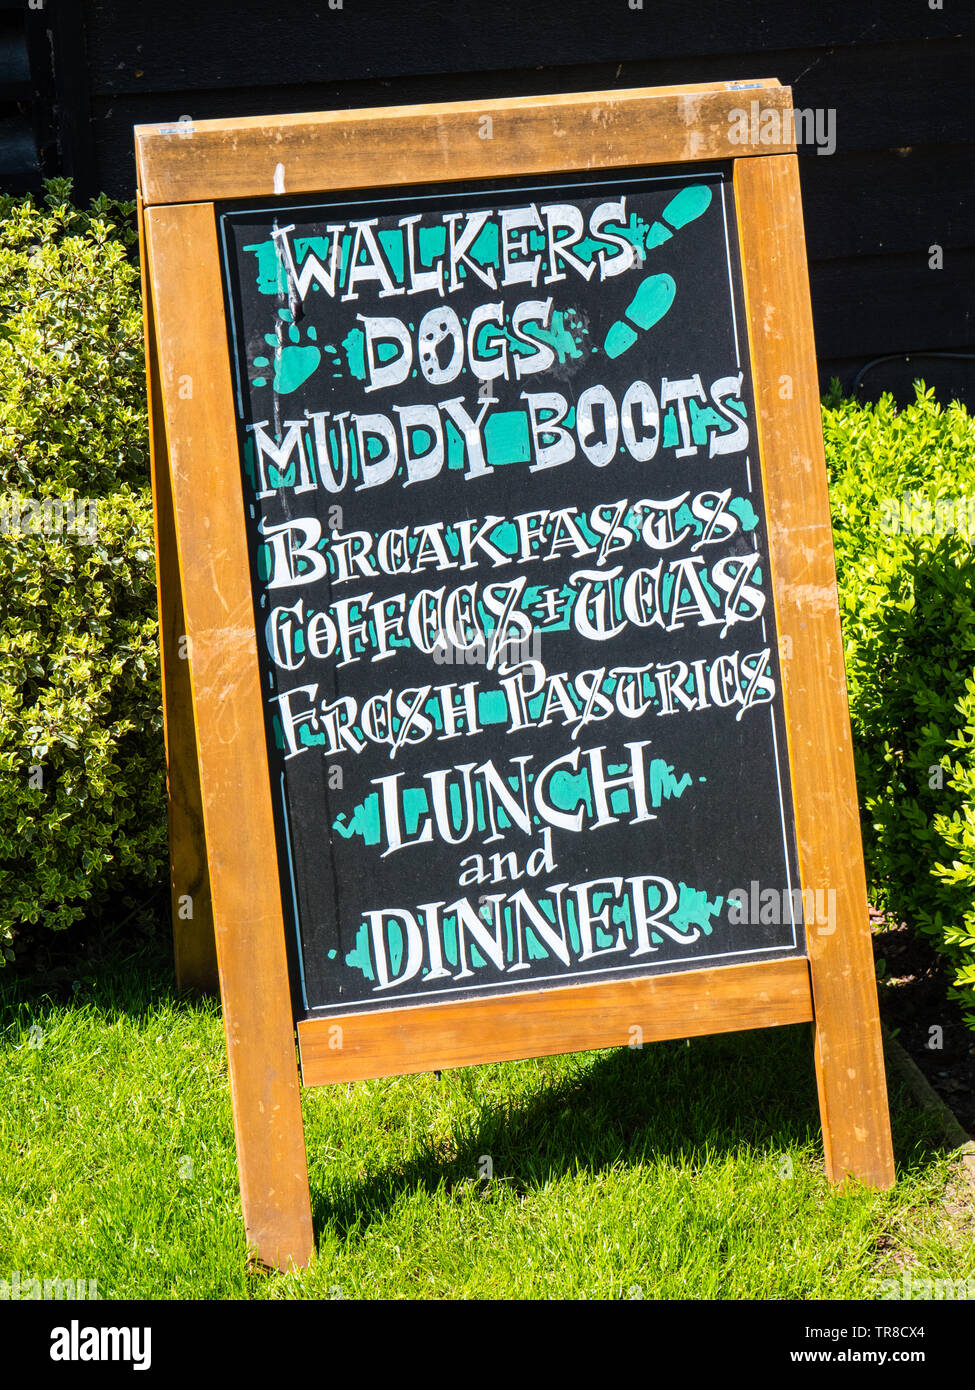 Pub Sign Saying Dog Walkers and Muddy Boots Welcome, The Stage and Hunter Pub, Hambleden, Buckinghamshire, England, UK, GB. - Stock Image